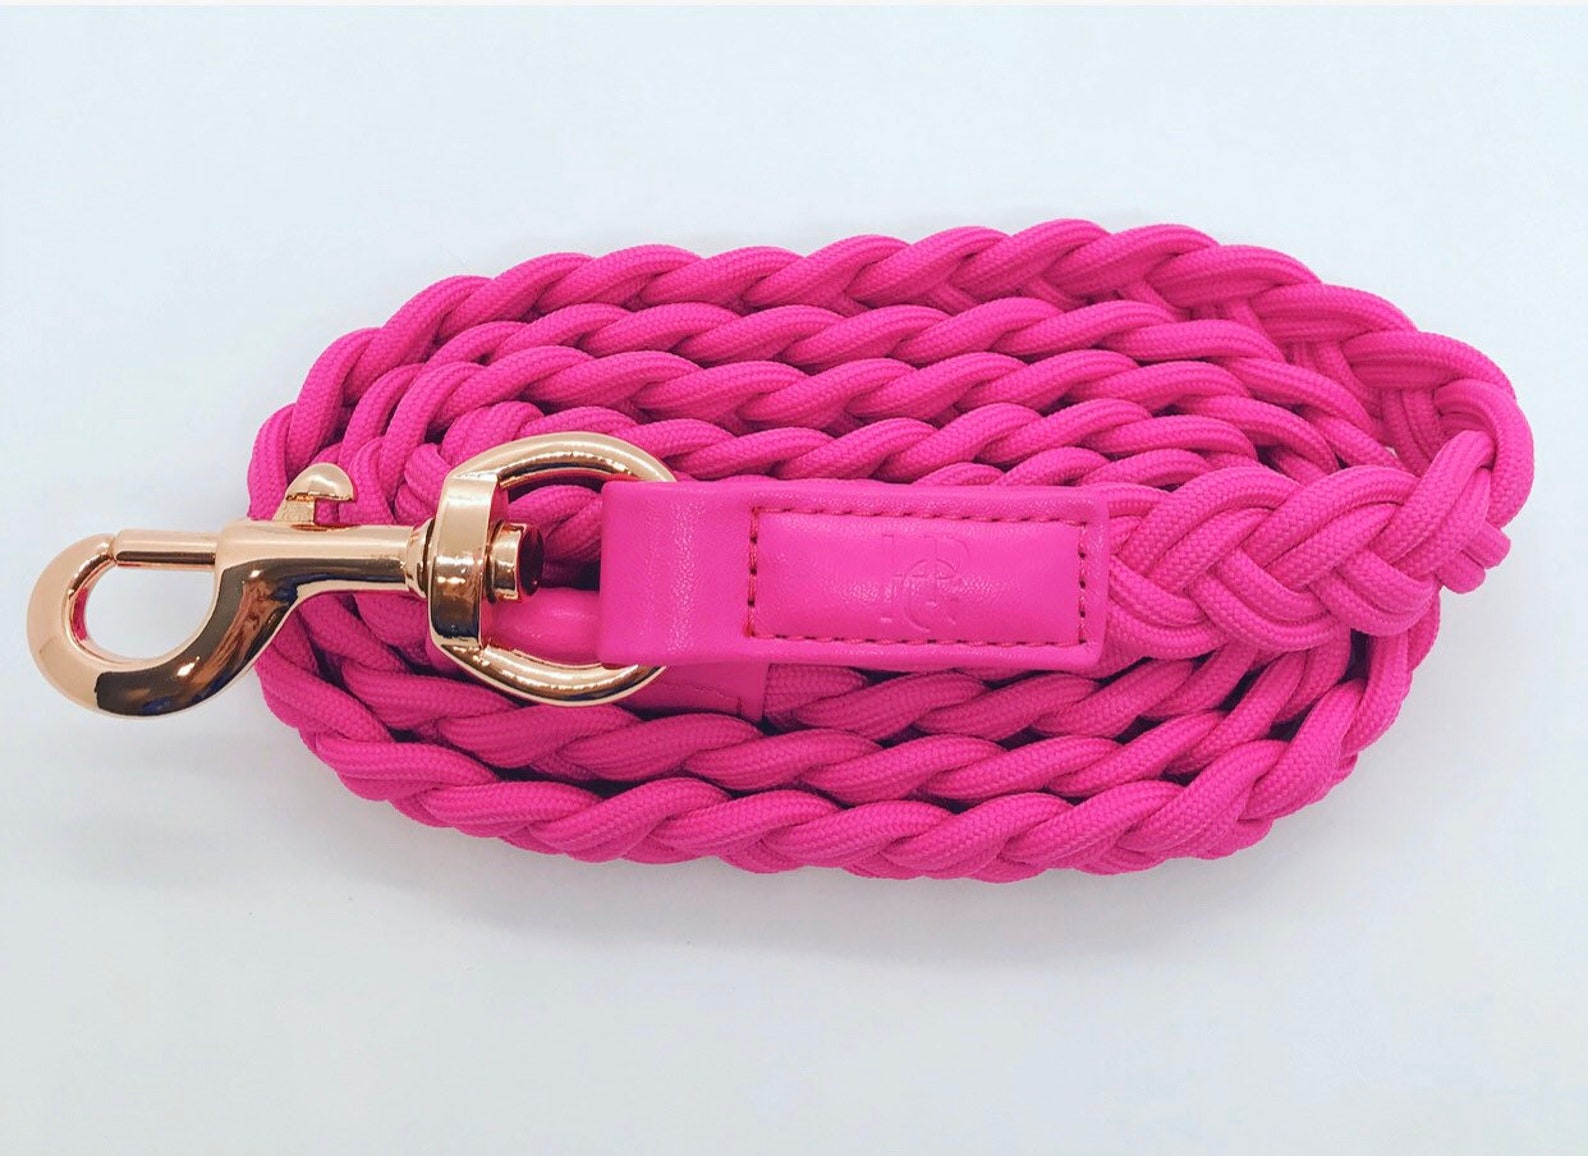 Lipstick pink dog leash